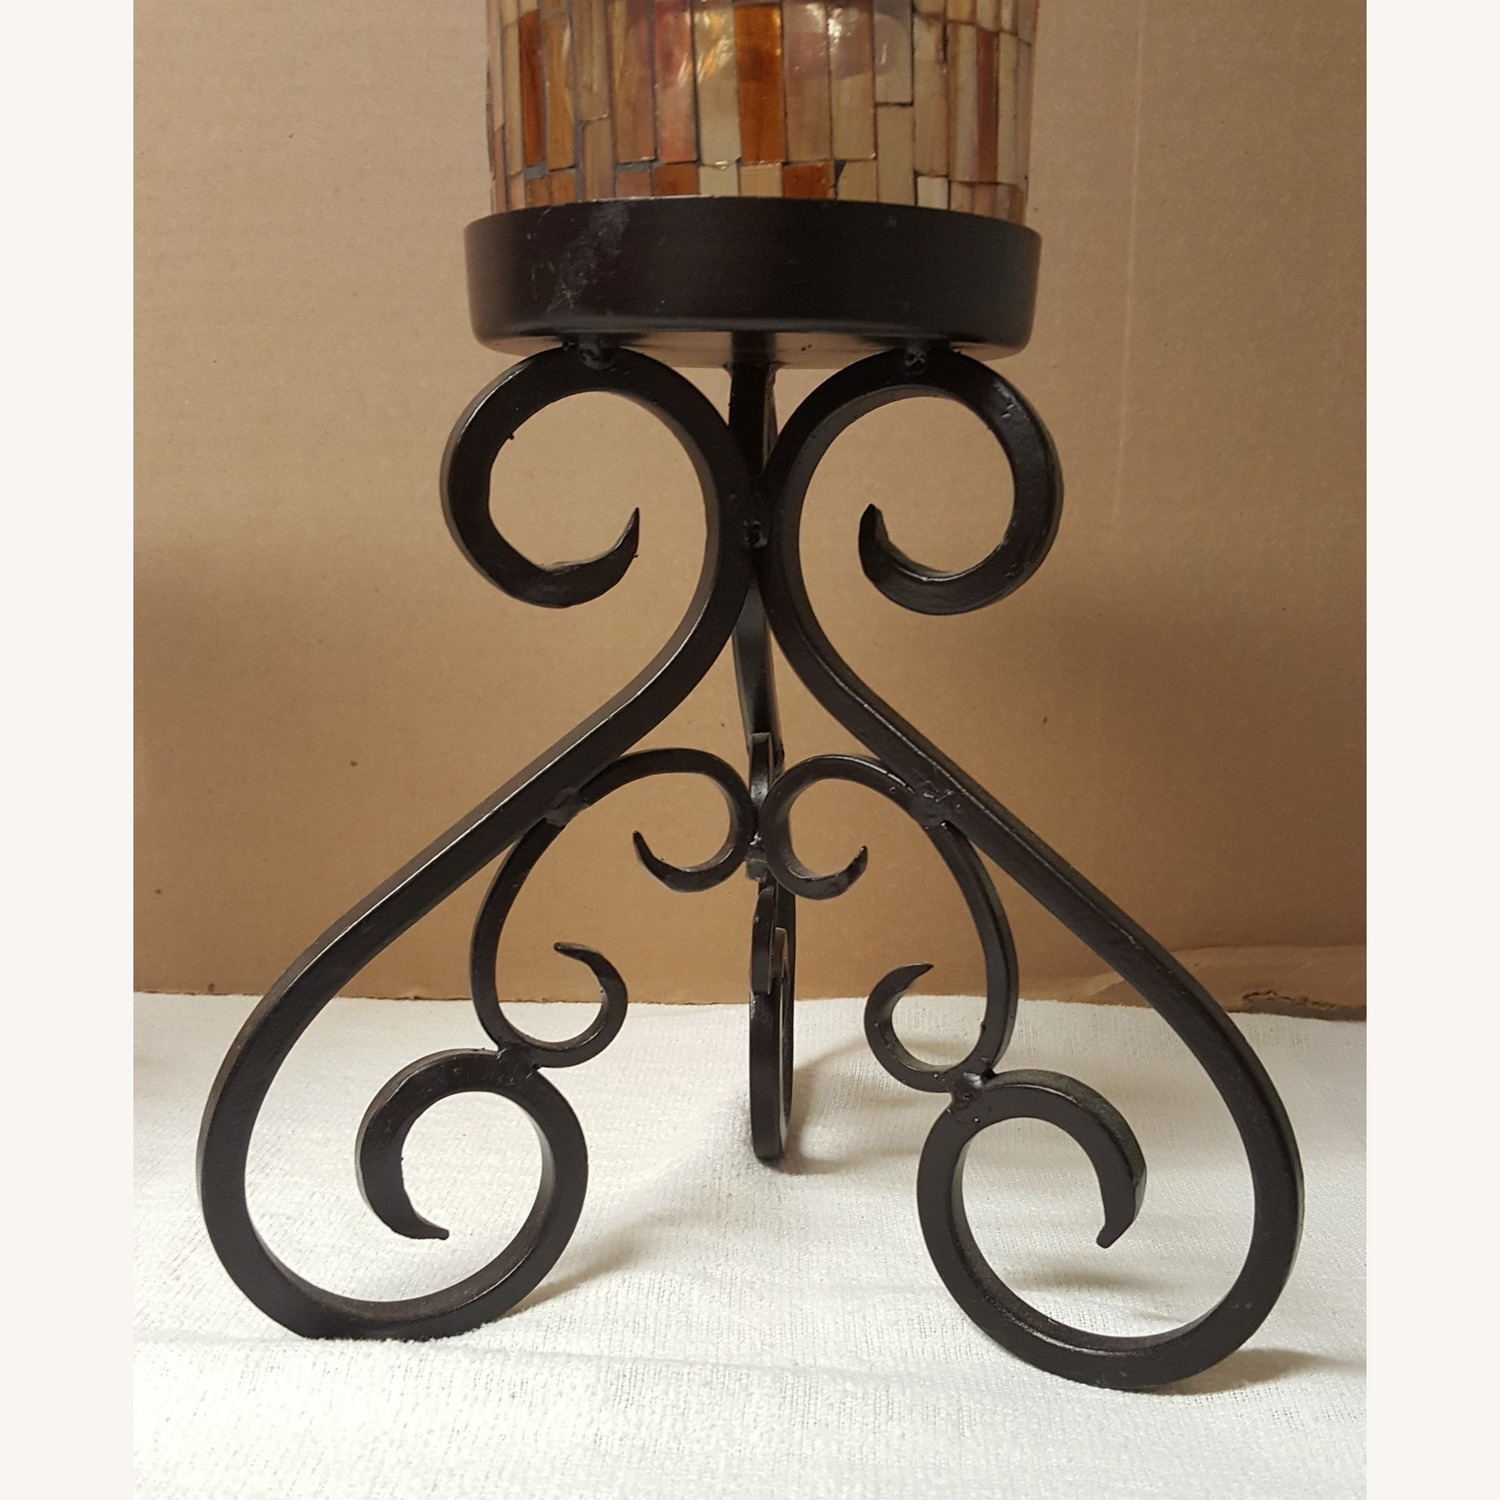 Mosaic Glass Dining-Table Candle Holders - image-4